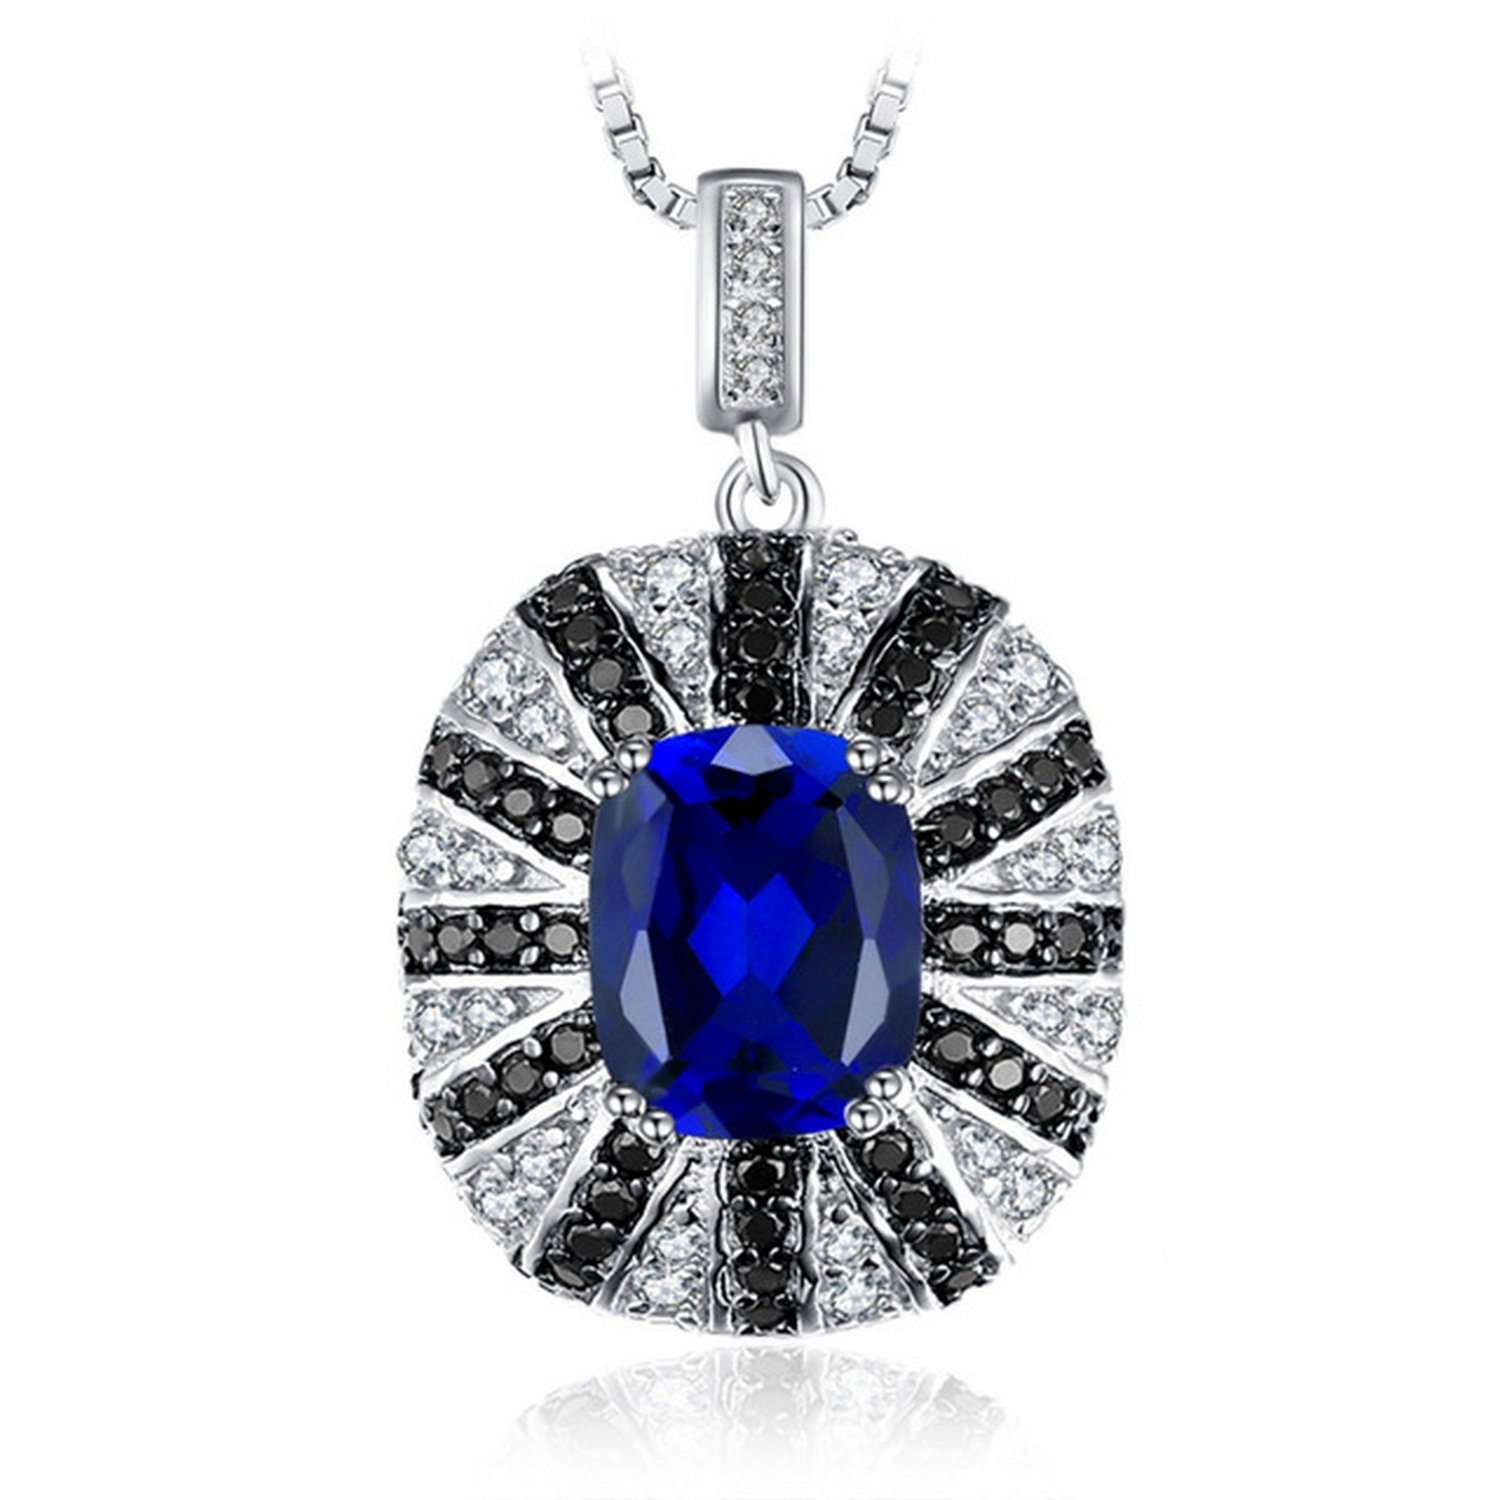 MMC Luxury 6ct Round Stone Silver Pendants Necklaces